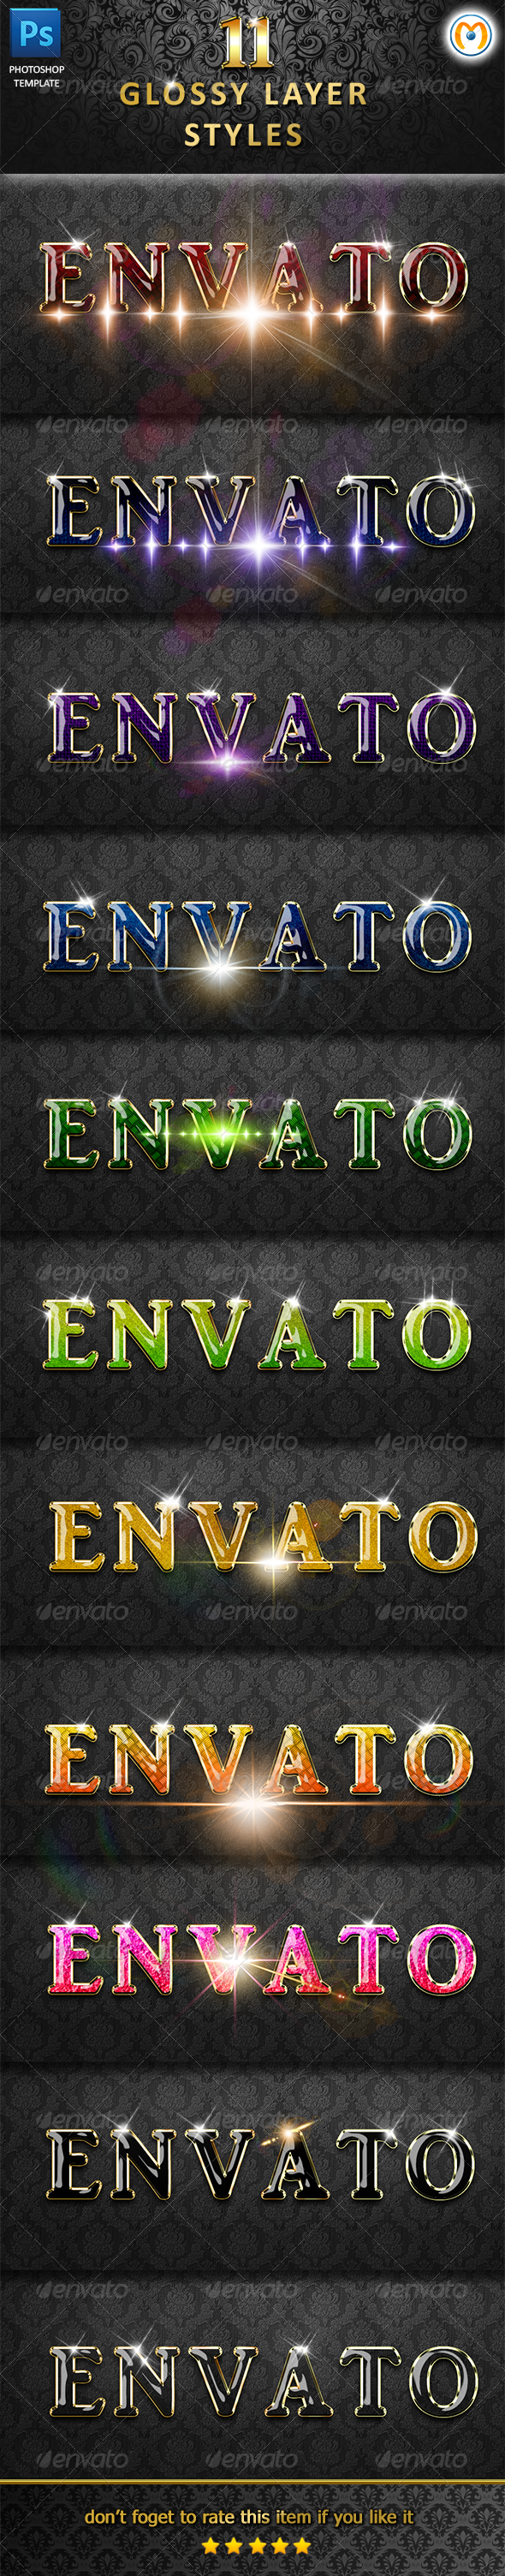 Glossy Layer Styles V.2 - Text Effects Styles